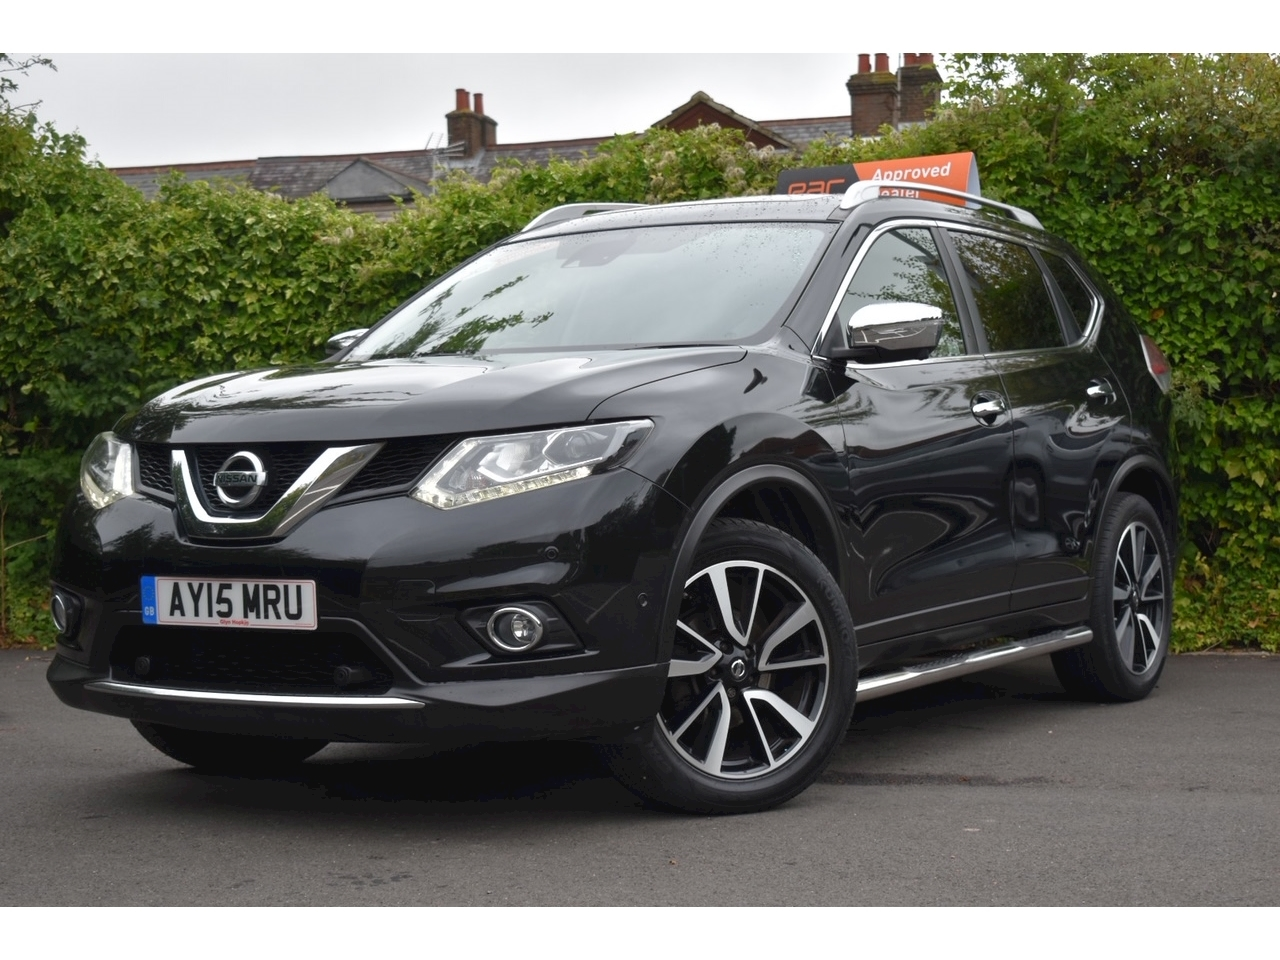 X-Trail Tekna 1.6 5dr SUV Manual Diesel